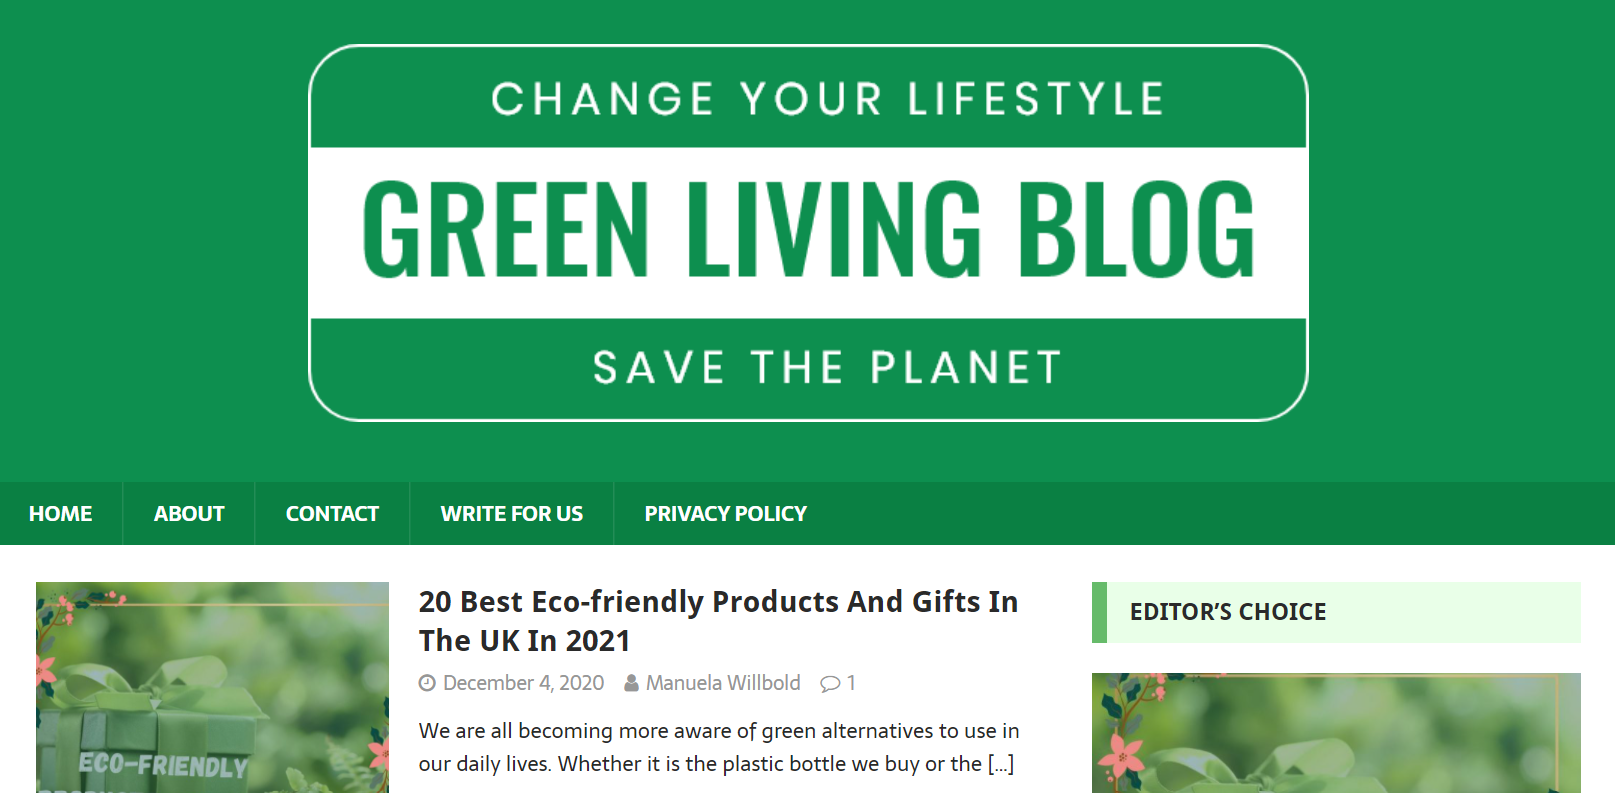 Digital-nomad-manages-green-living-blog-for-online-success